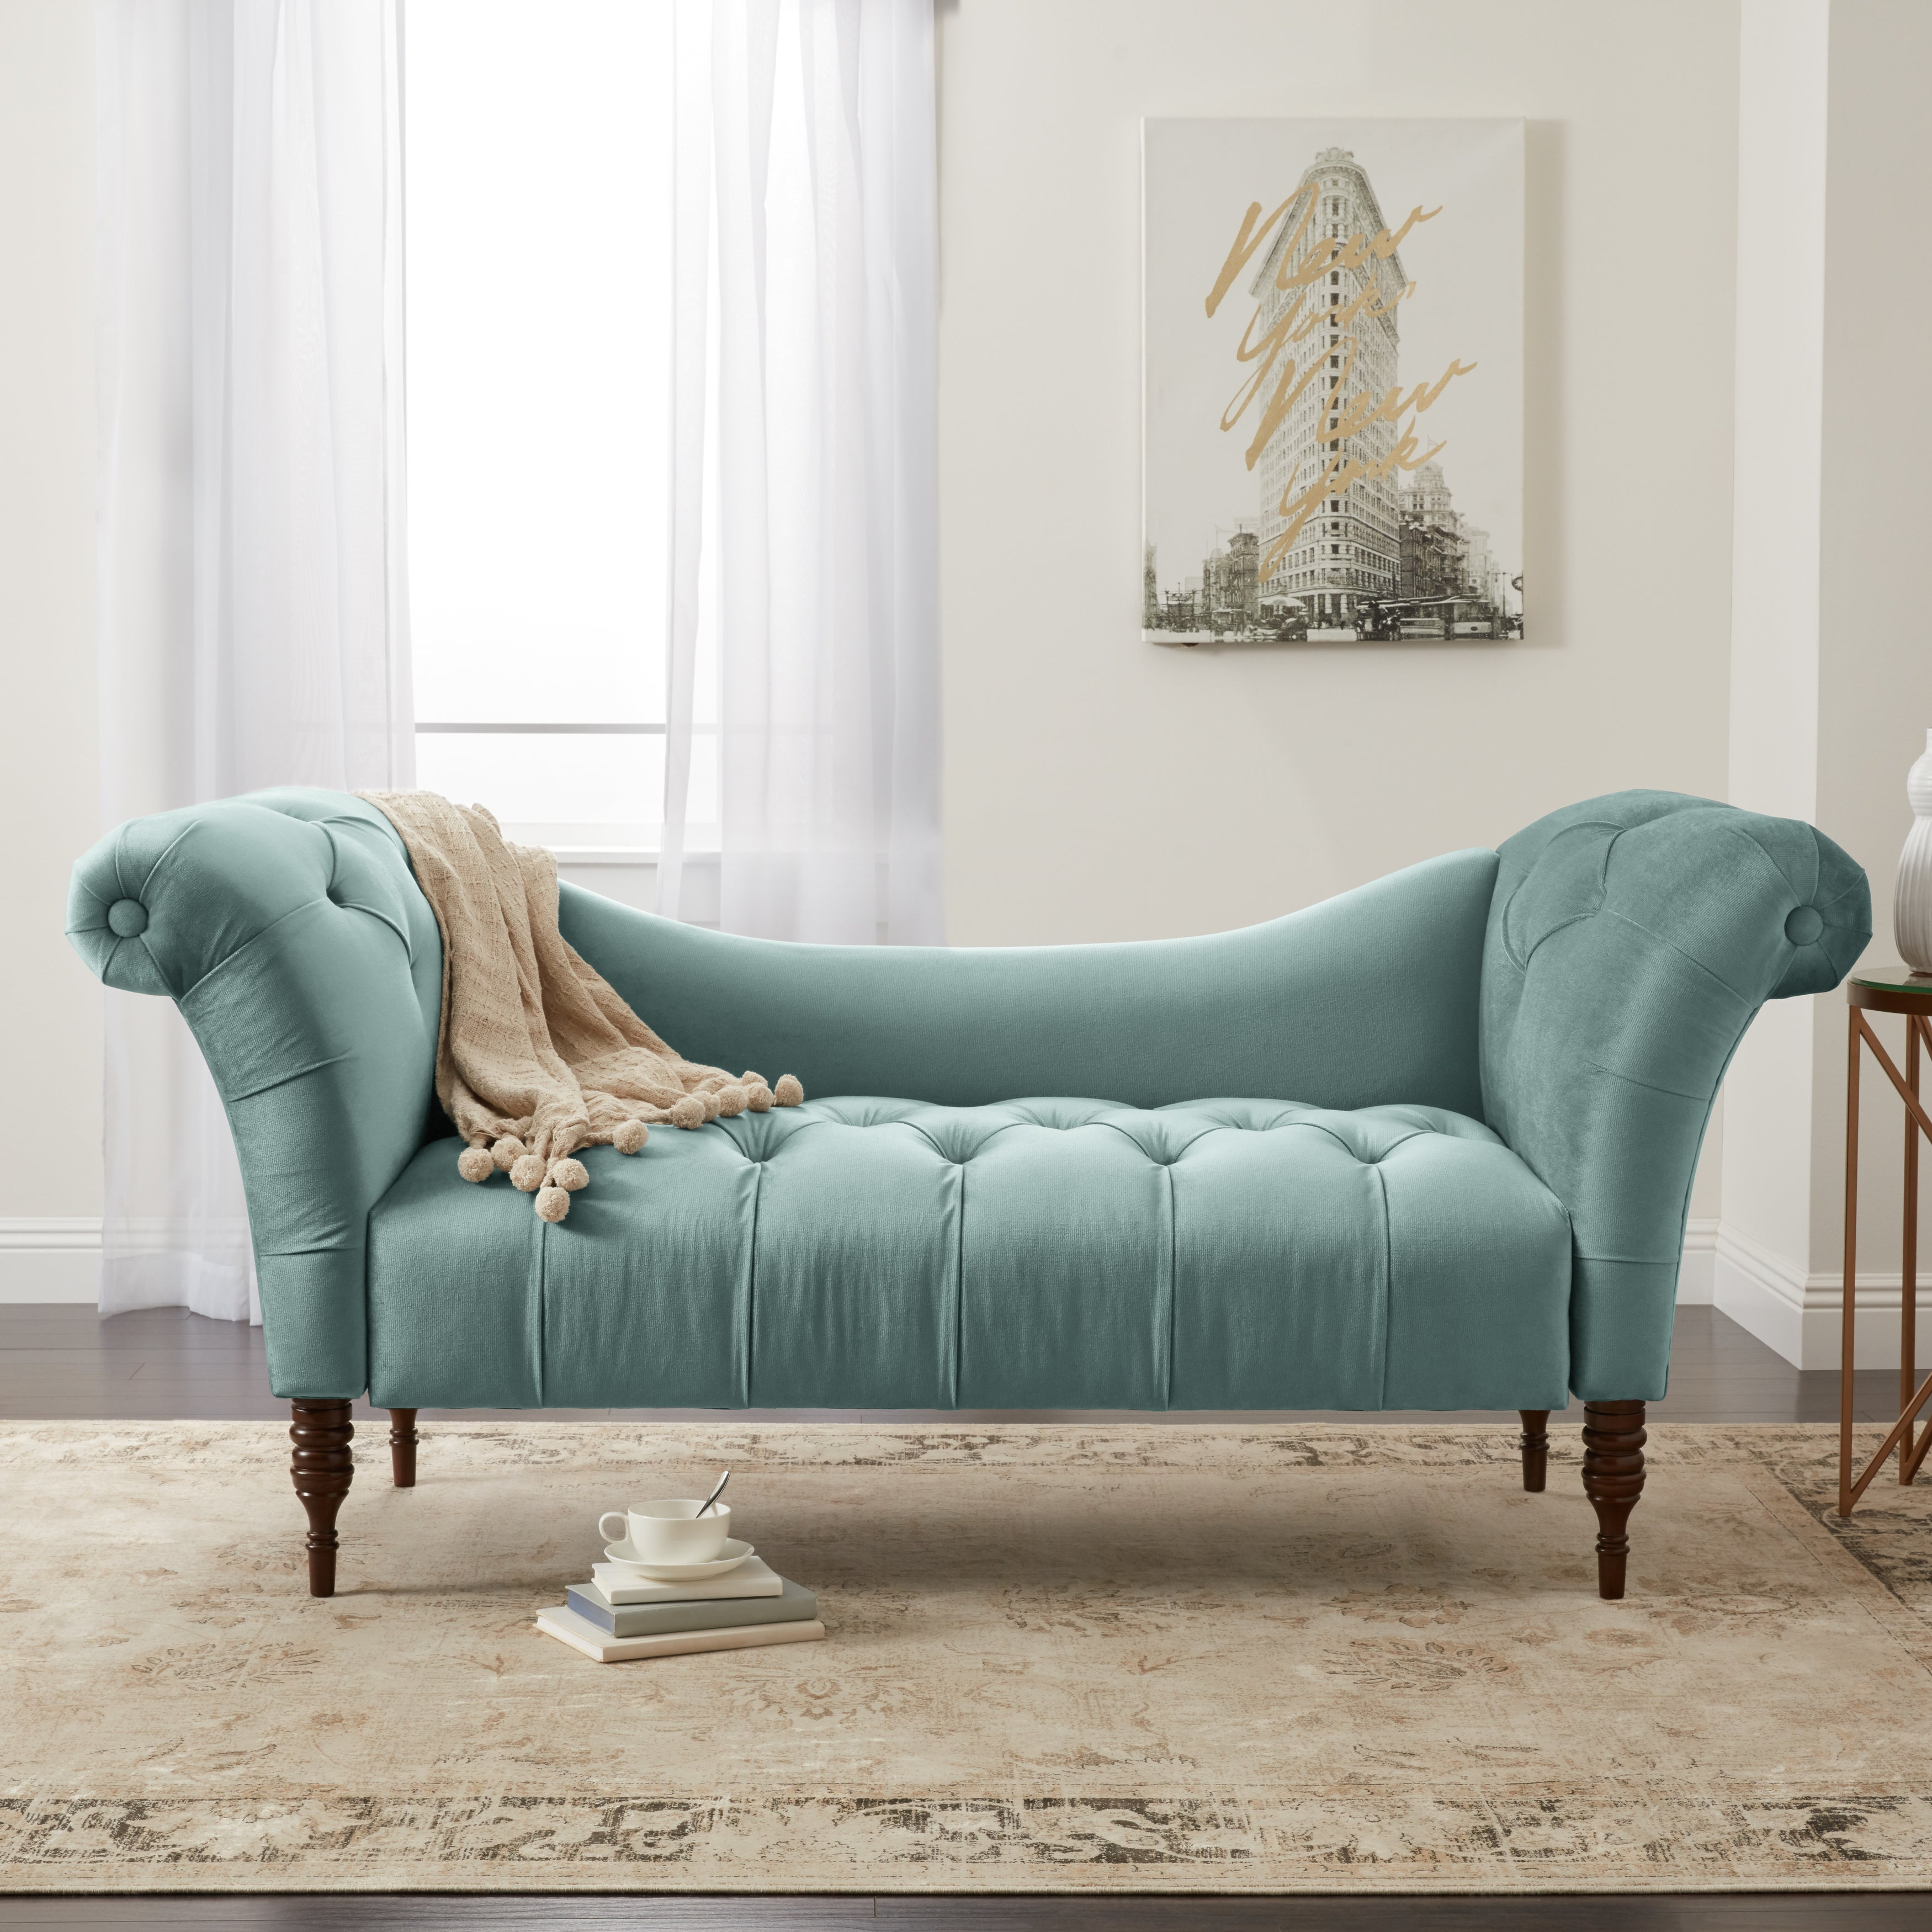 - Shop Skyline Furniture Tufted Chaise Lounge In Linen - Overstock - 20012093